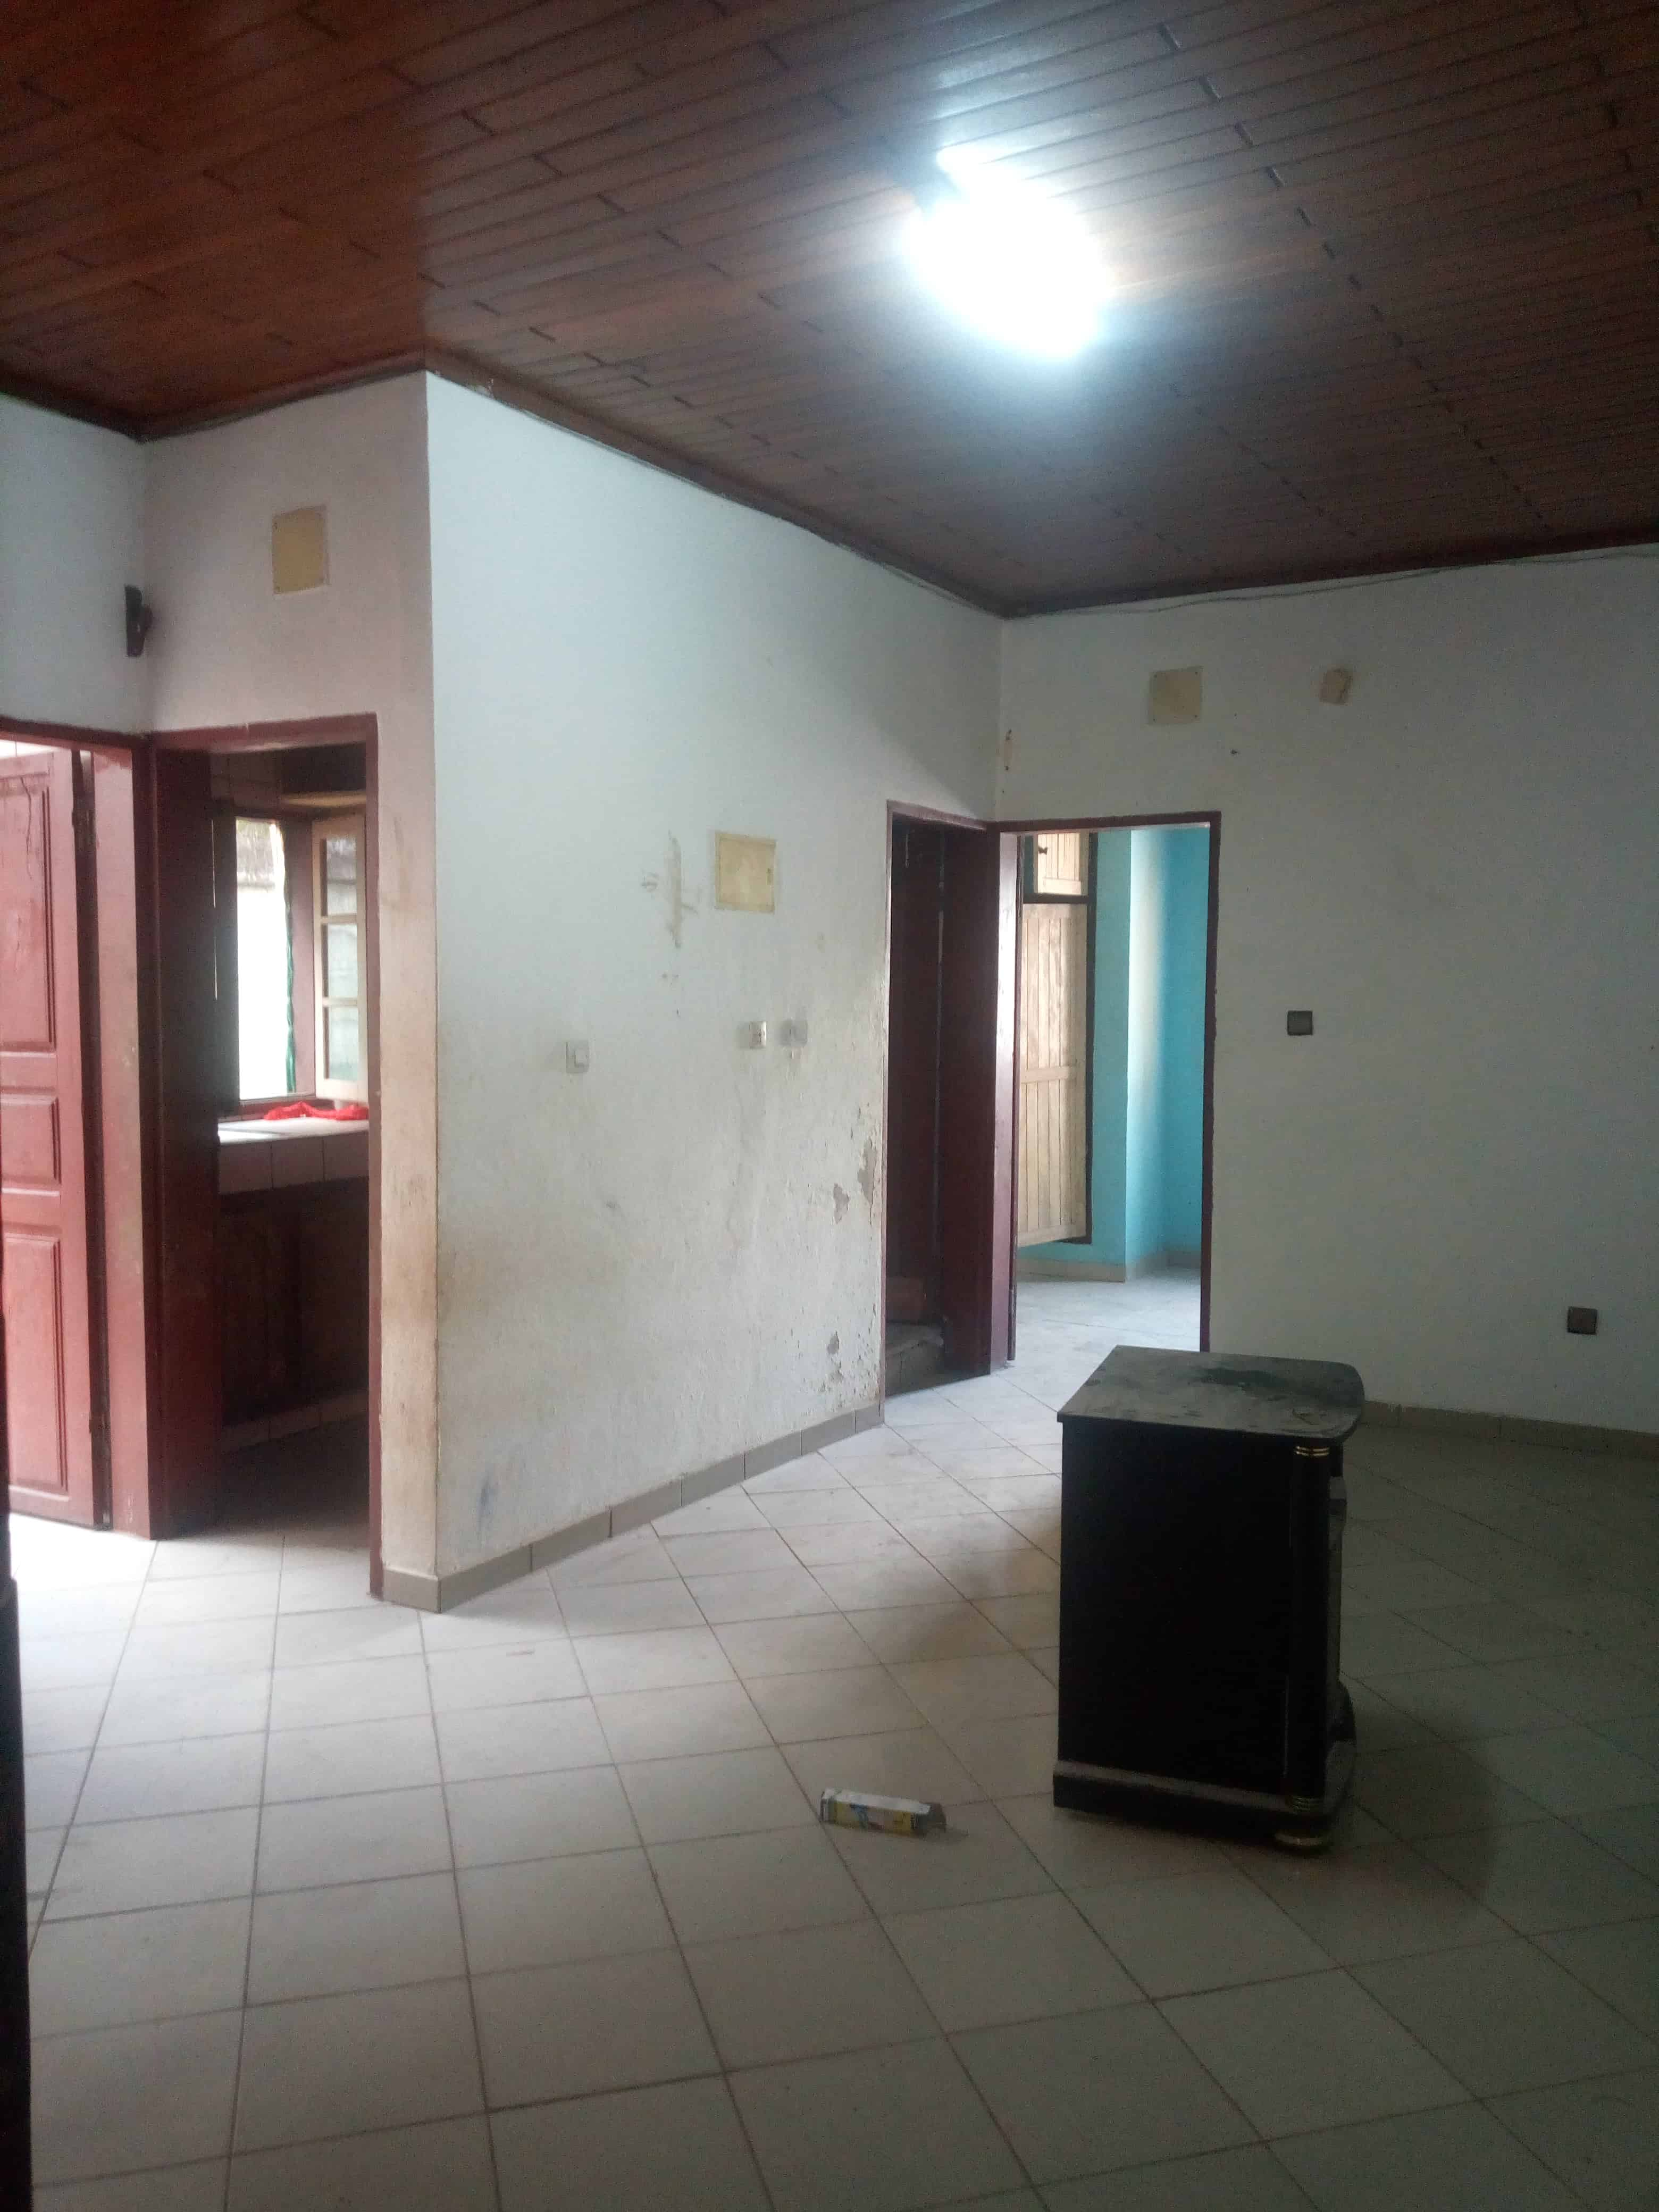 Apartment to rent - Douala, Makepe, Rond pauleng - 1 living room(s), 1 bedroom(s), 1 bathroom(s) - 70 000 FCFA / month